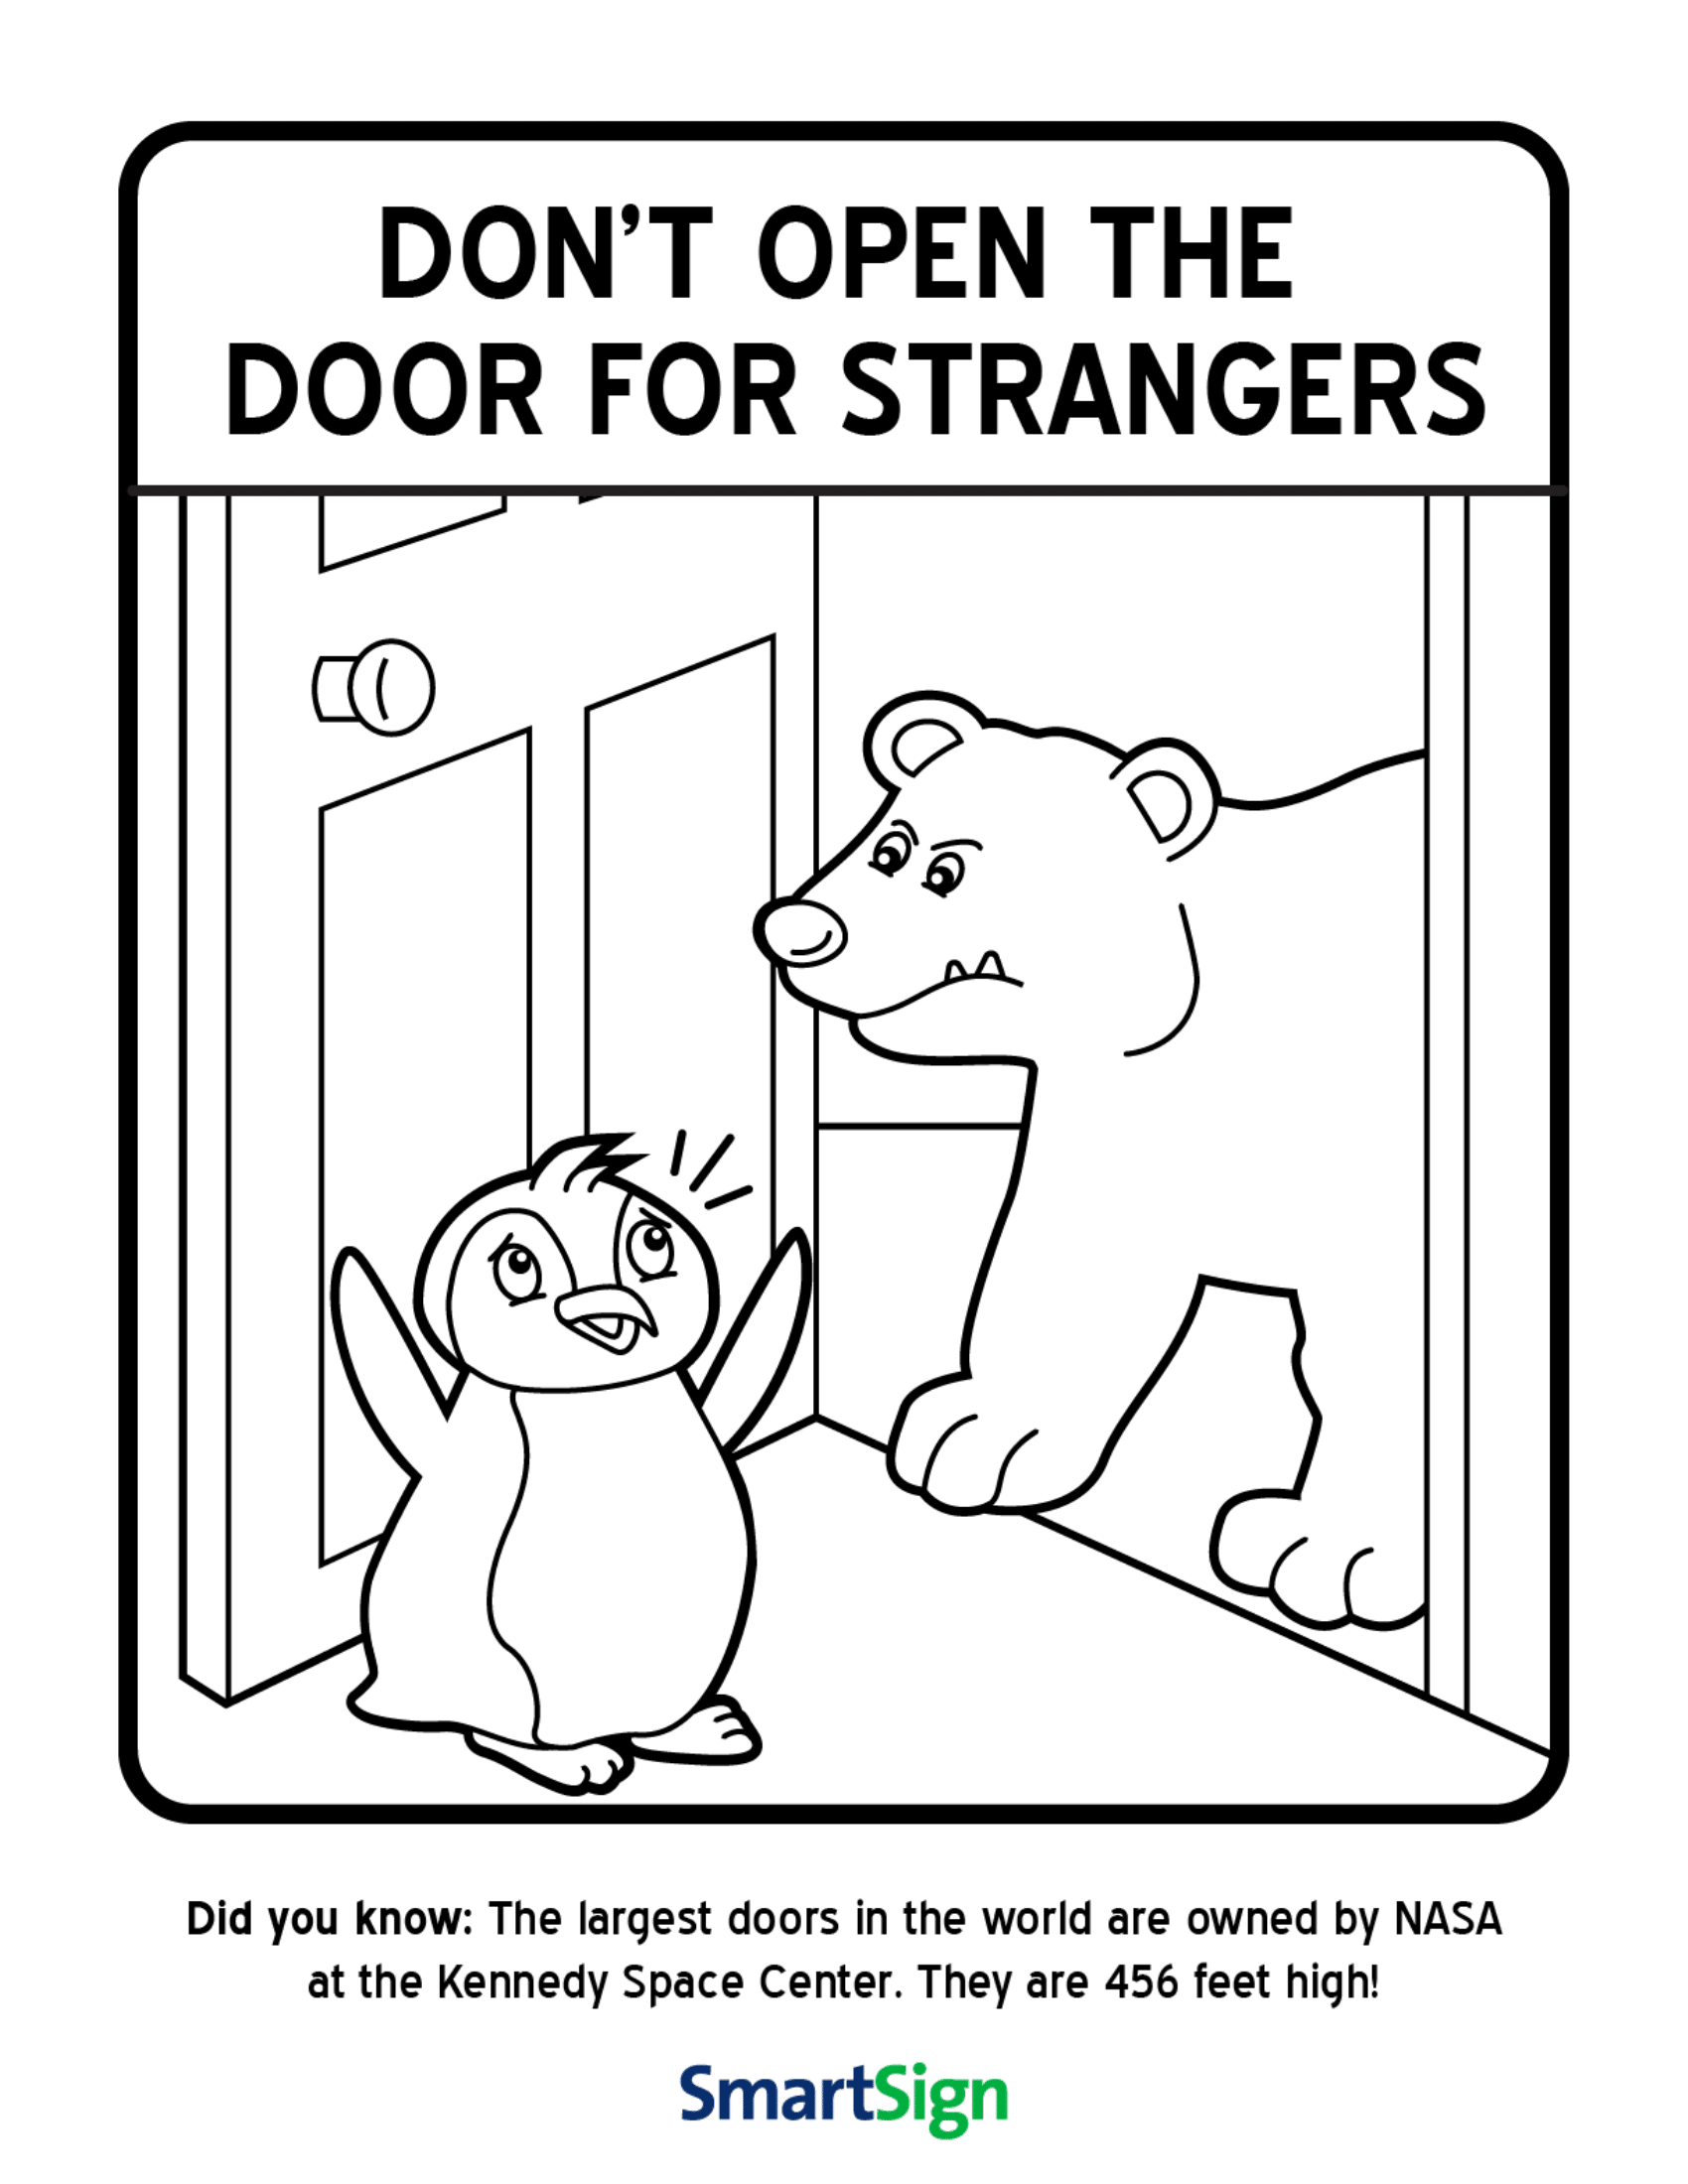 Safety Coloring Printable for Kids - donu0027t open the door for strangers.  sc 1 st  Pics4Learning & Safety Coloring Printable for Kids - donu0027t open the door for ...